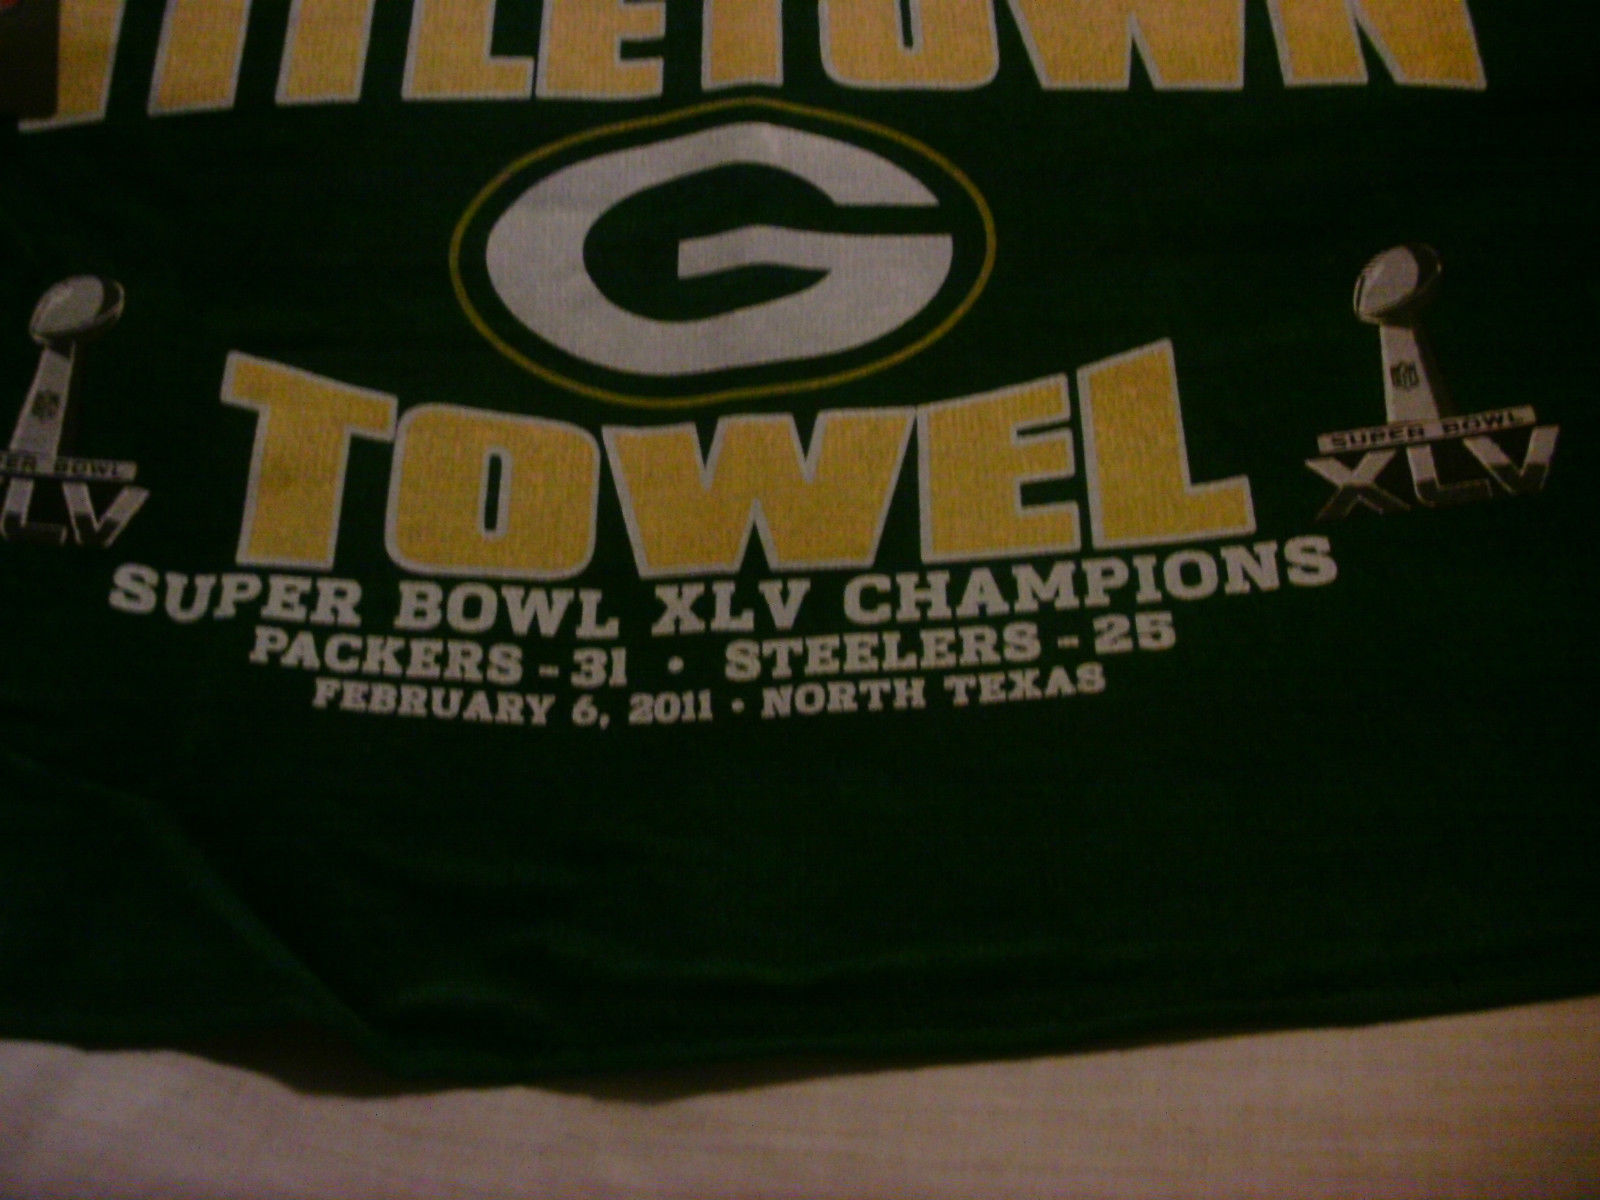 Green Bay Packers Title Town Towel Super Bowl XLV Super Bowl Champions image 2